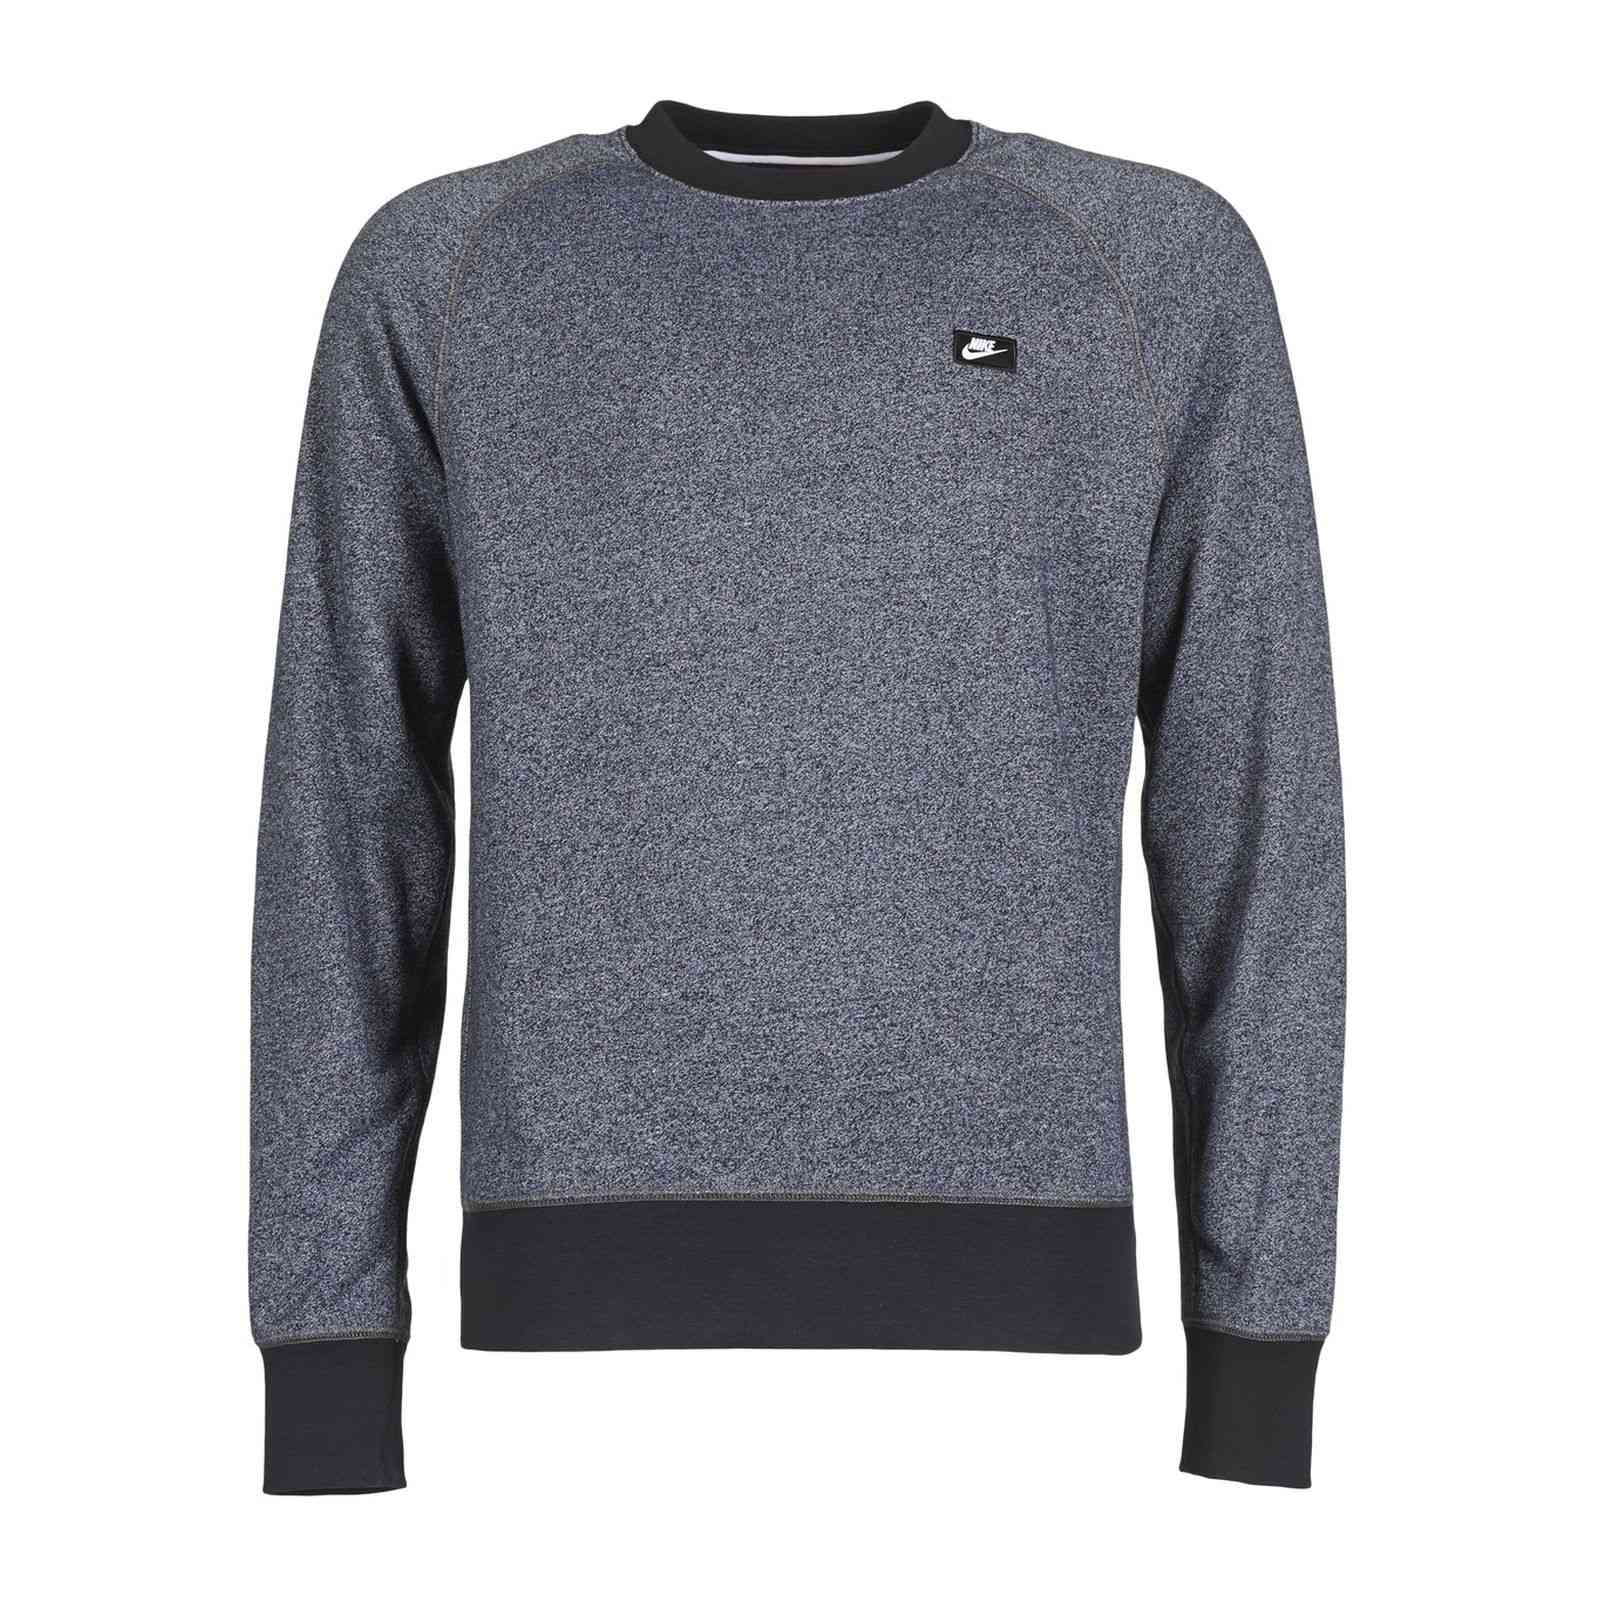 nike aw77 crew sweat shirt gris chine brandalley. Black Bedroom Furniture Sets. Home Design Ideas